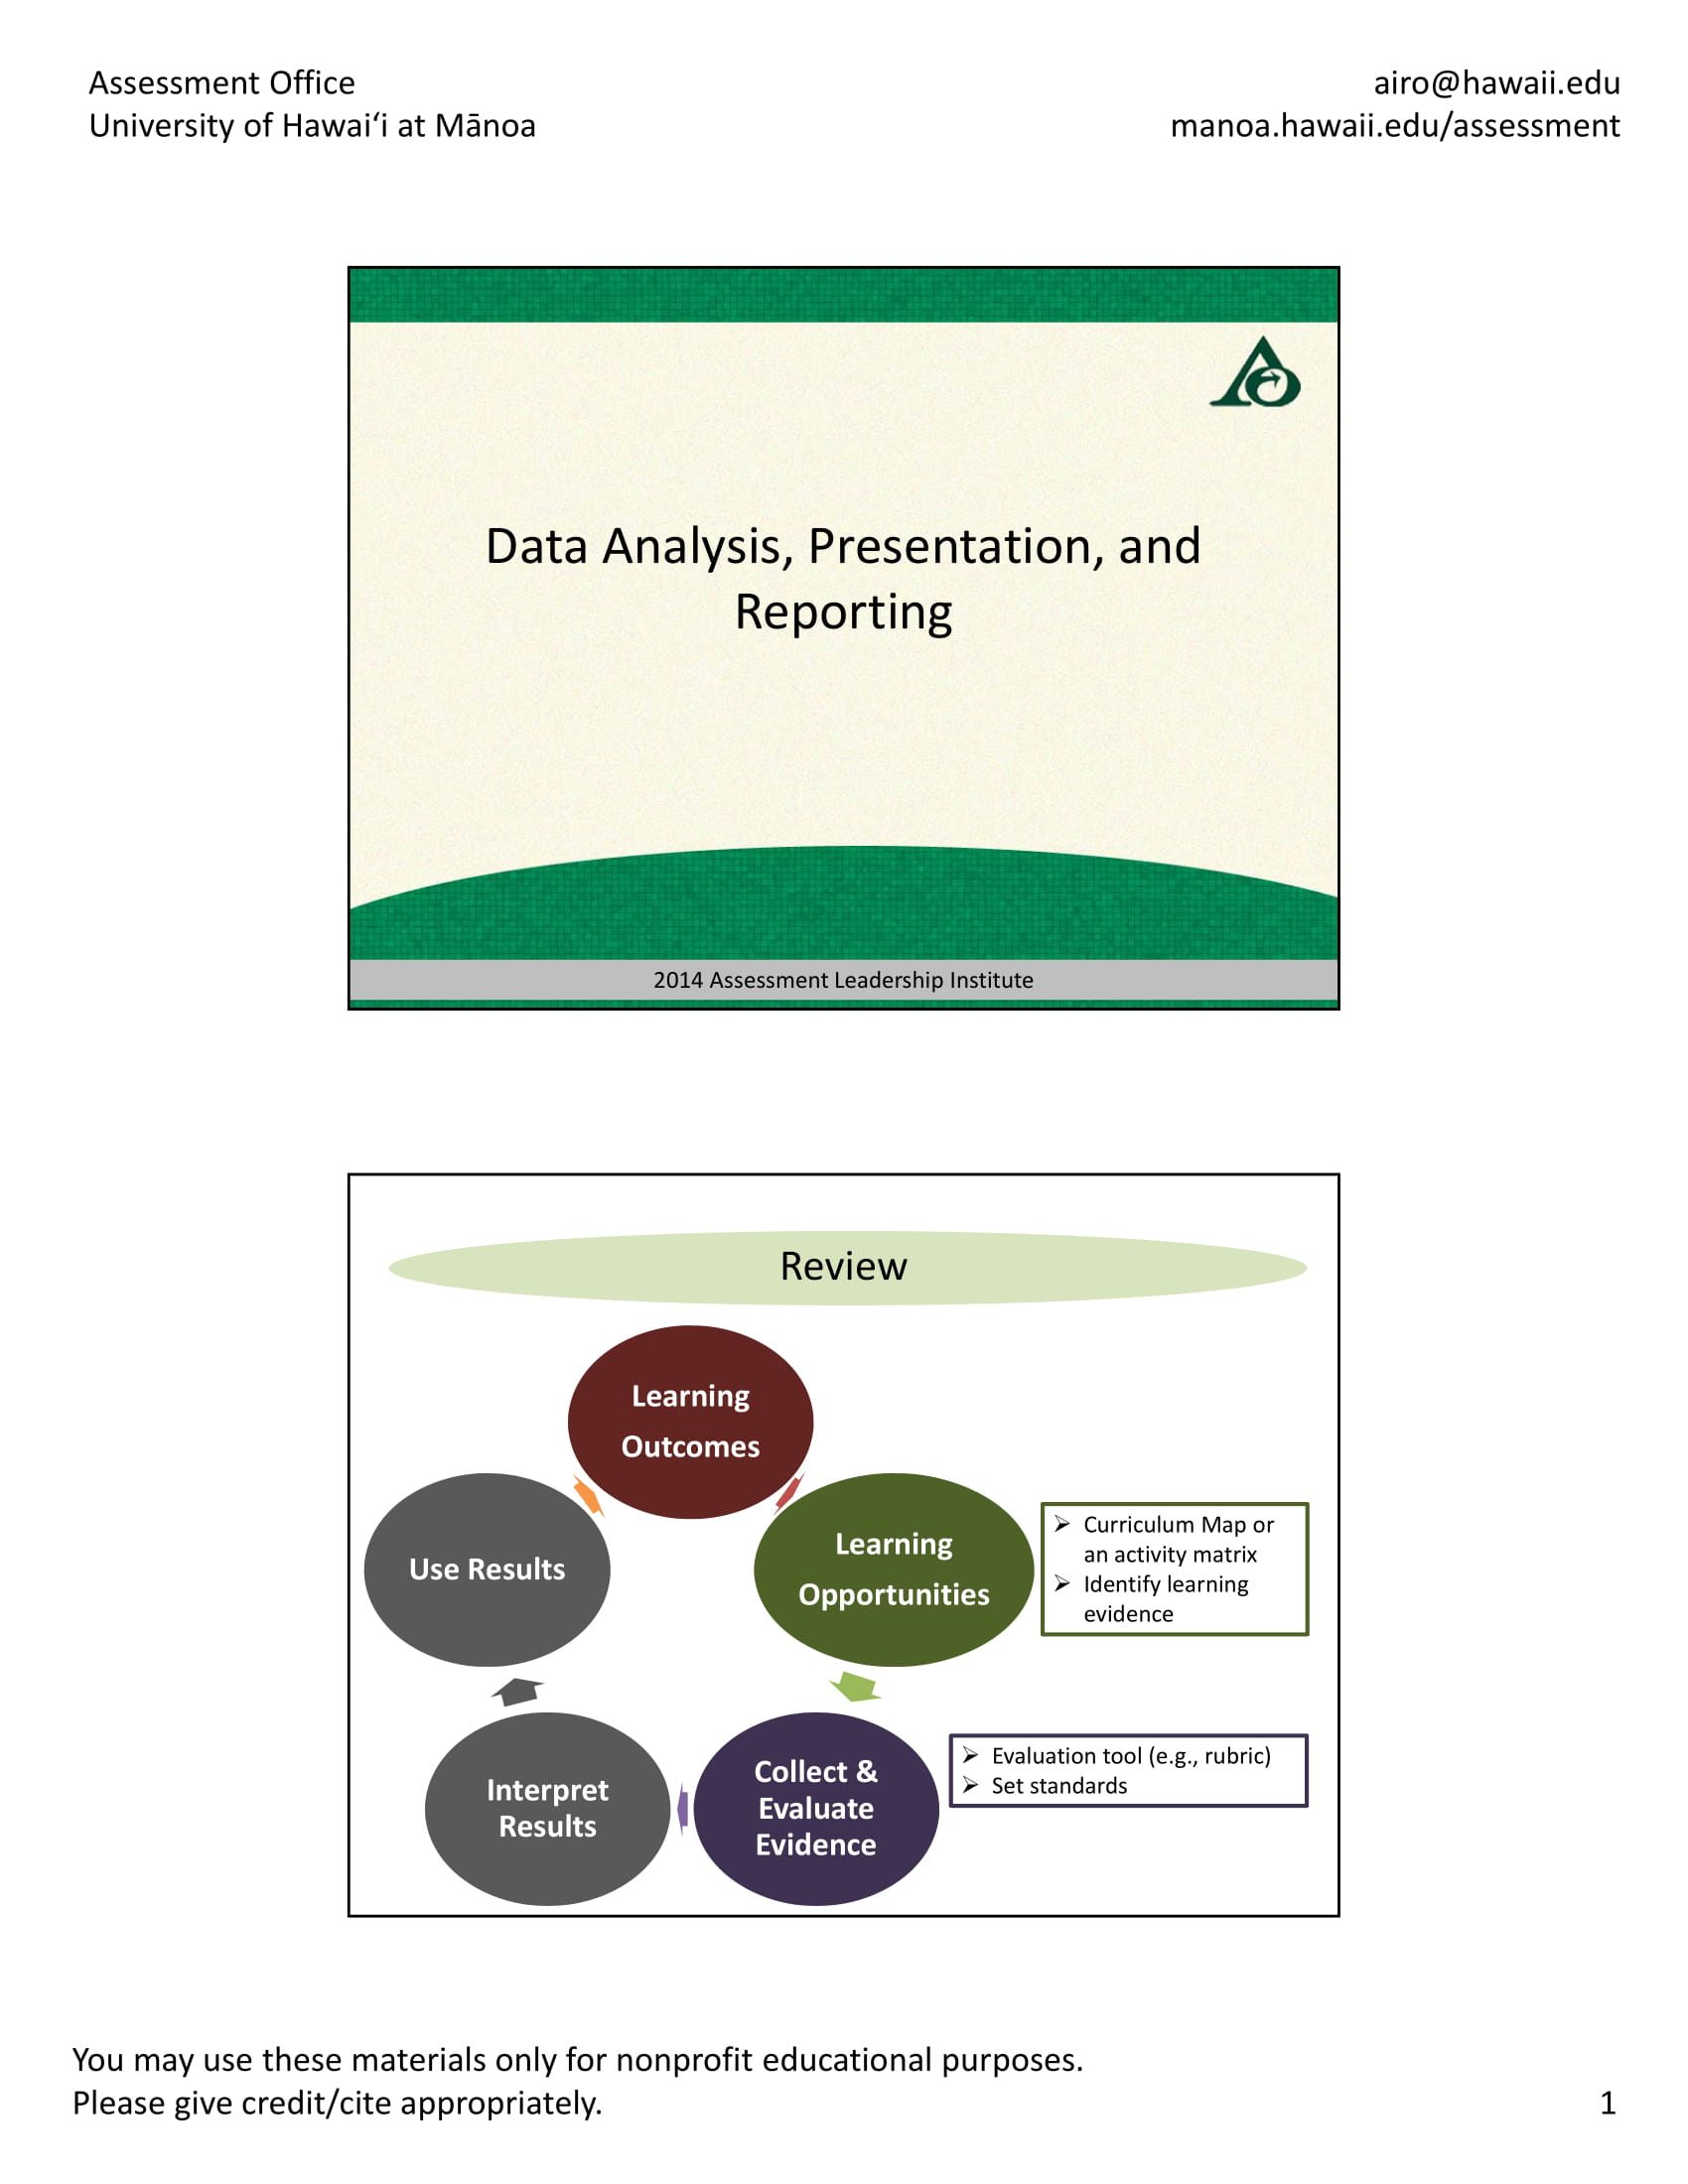 data analysis presentation and reporting example 01